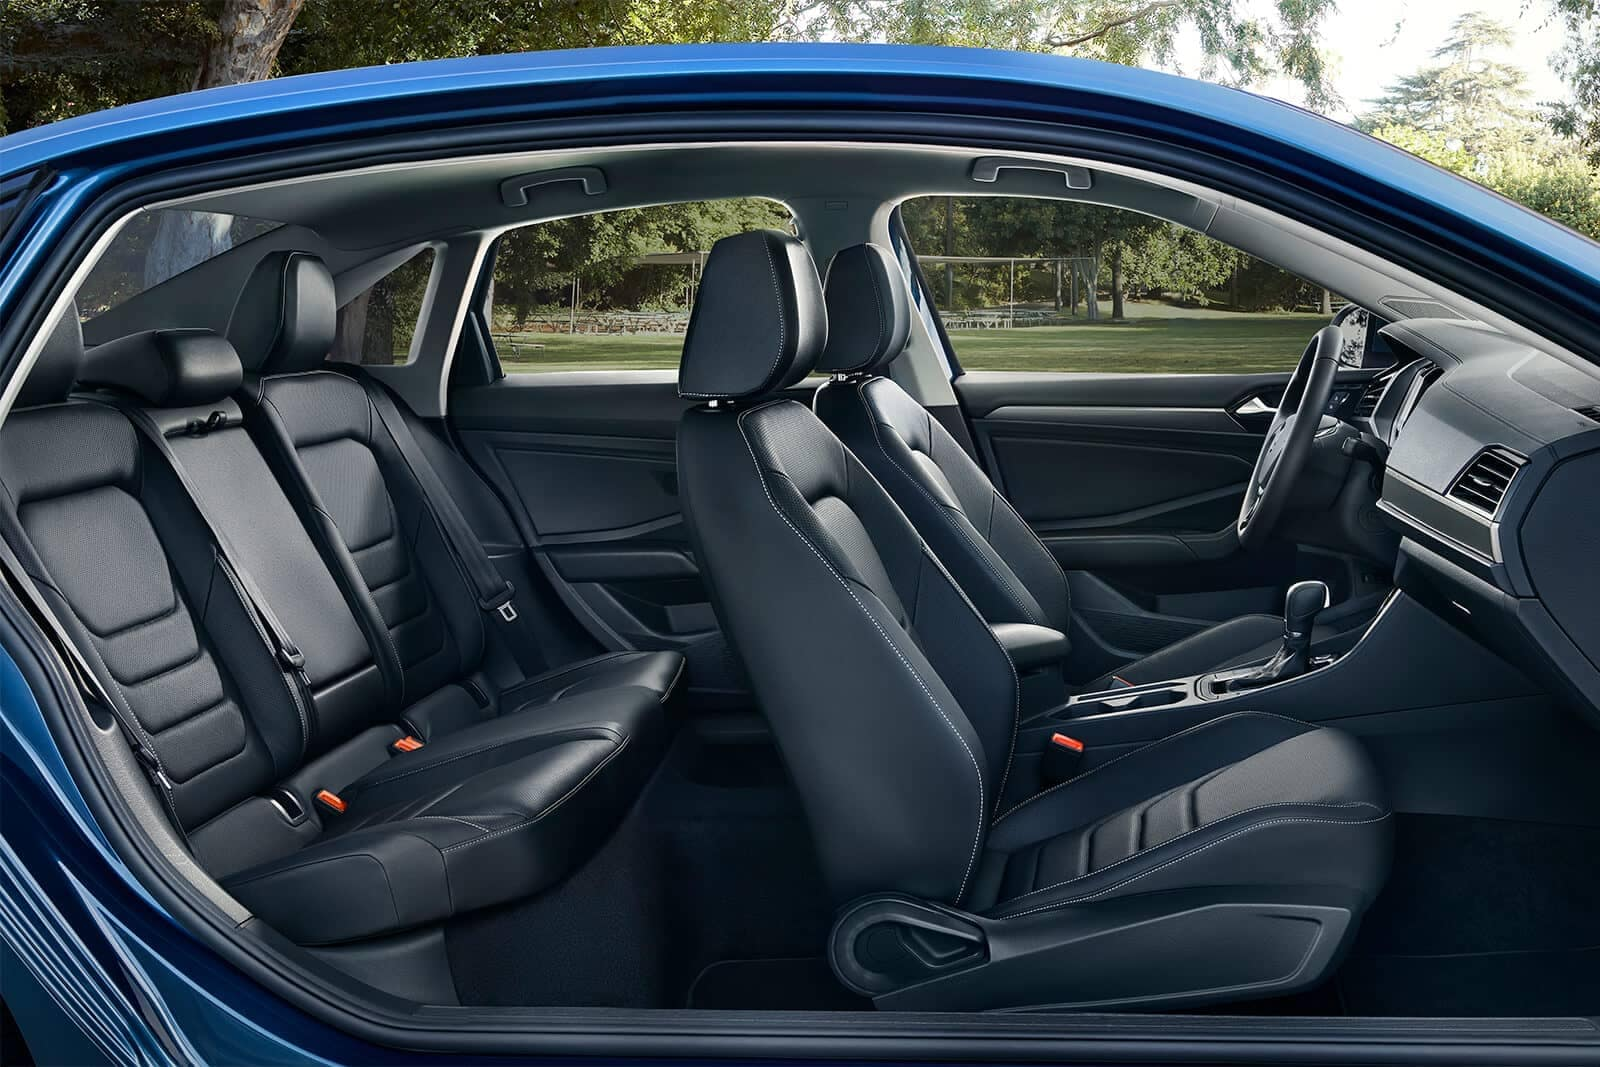 2019 Volkswagen Jetta Seating